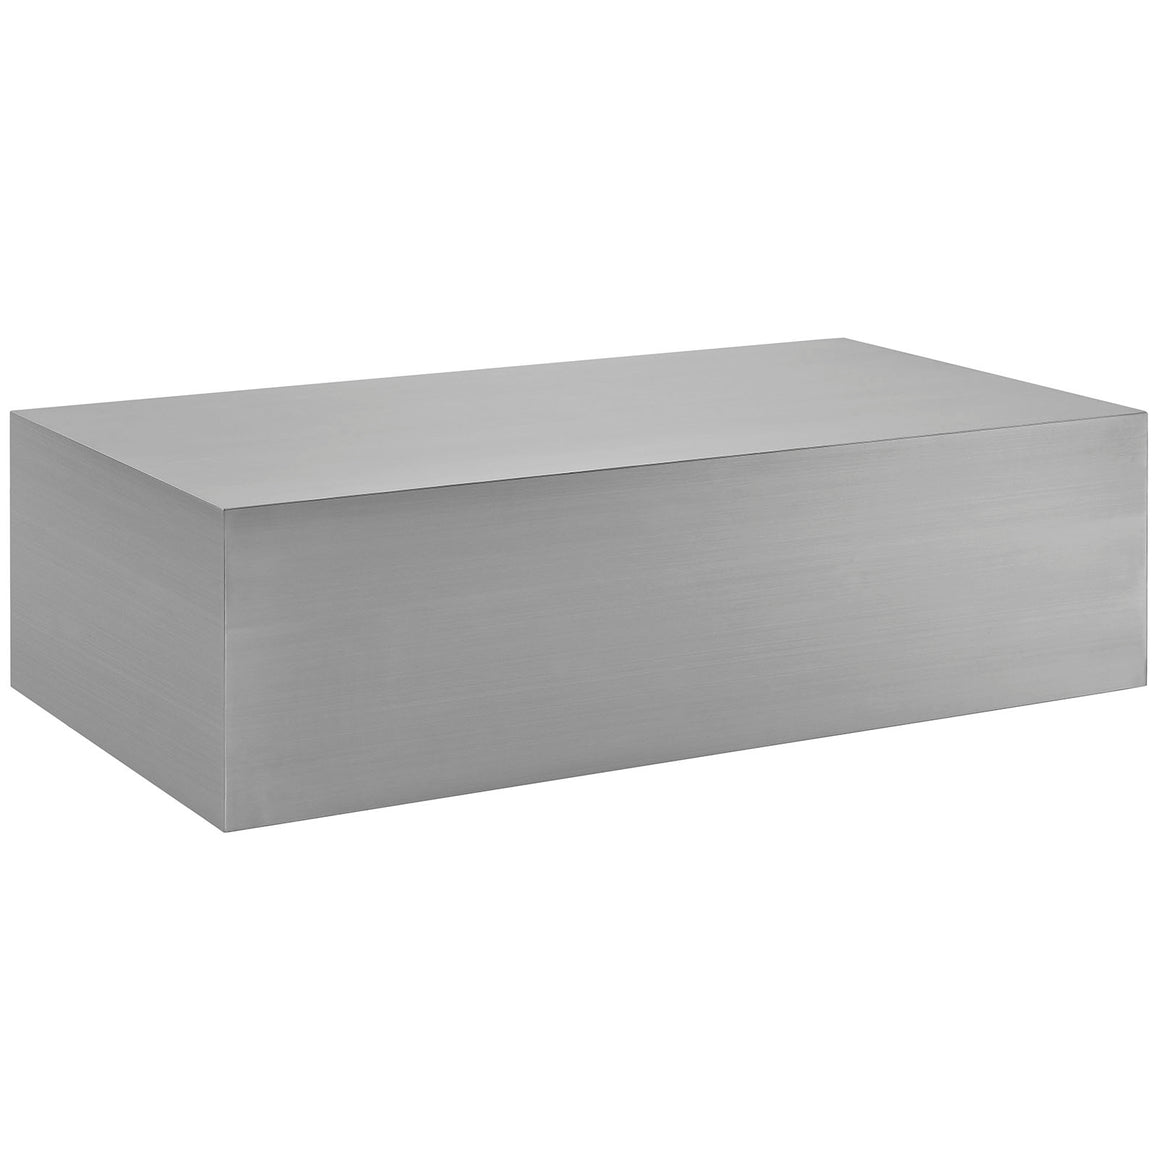 Cast Stainless Steel Coffee Table